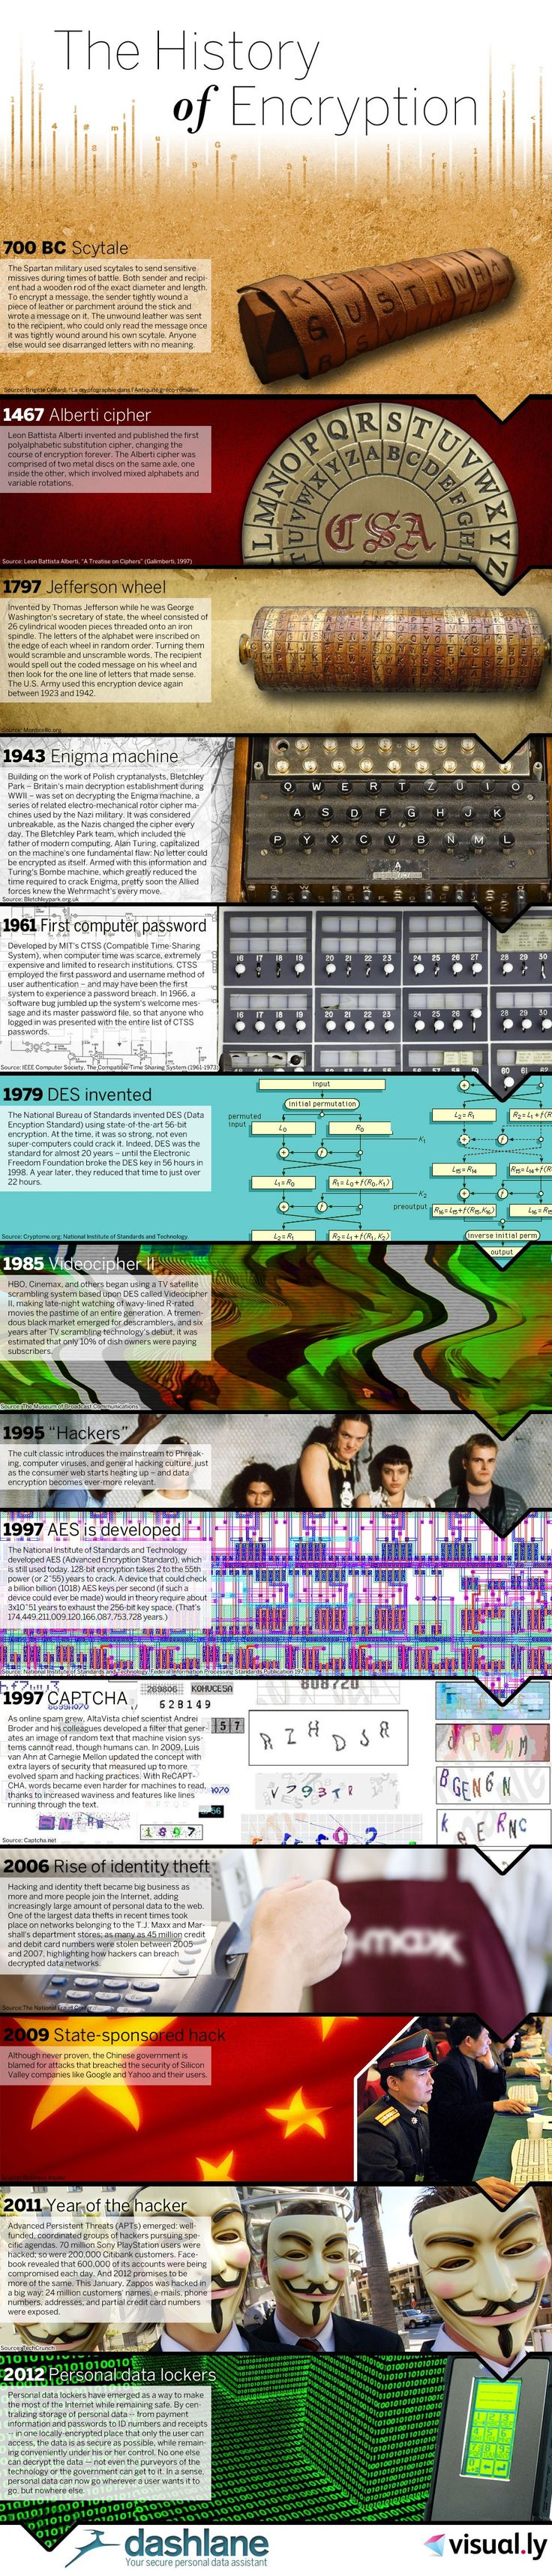 From Parchment to Data Lockers: History of the Password [INFOGRAPHIC] Posted 5/4/12